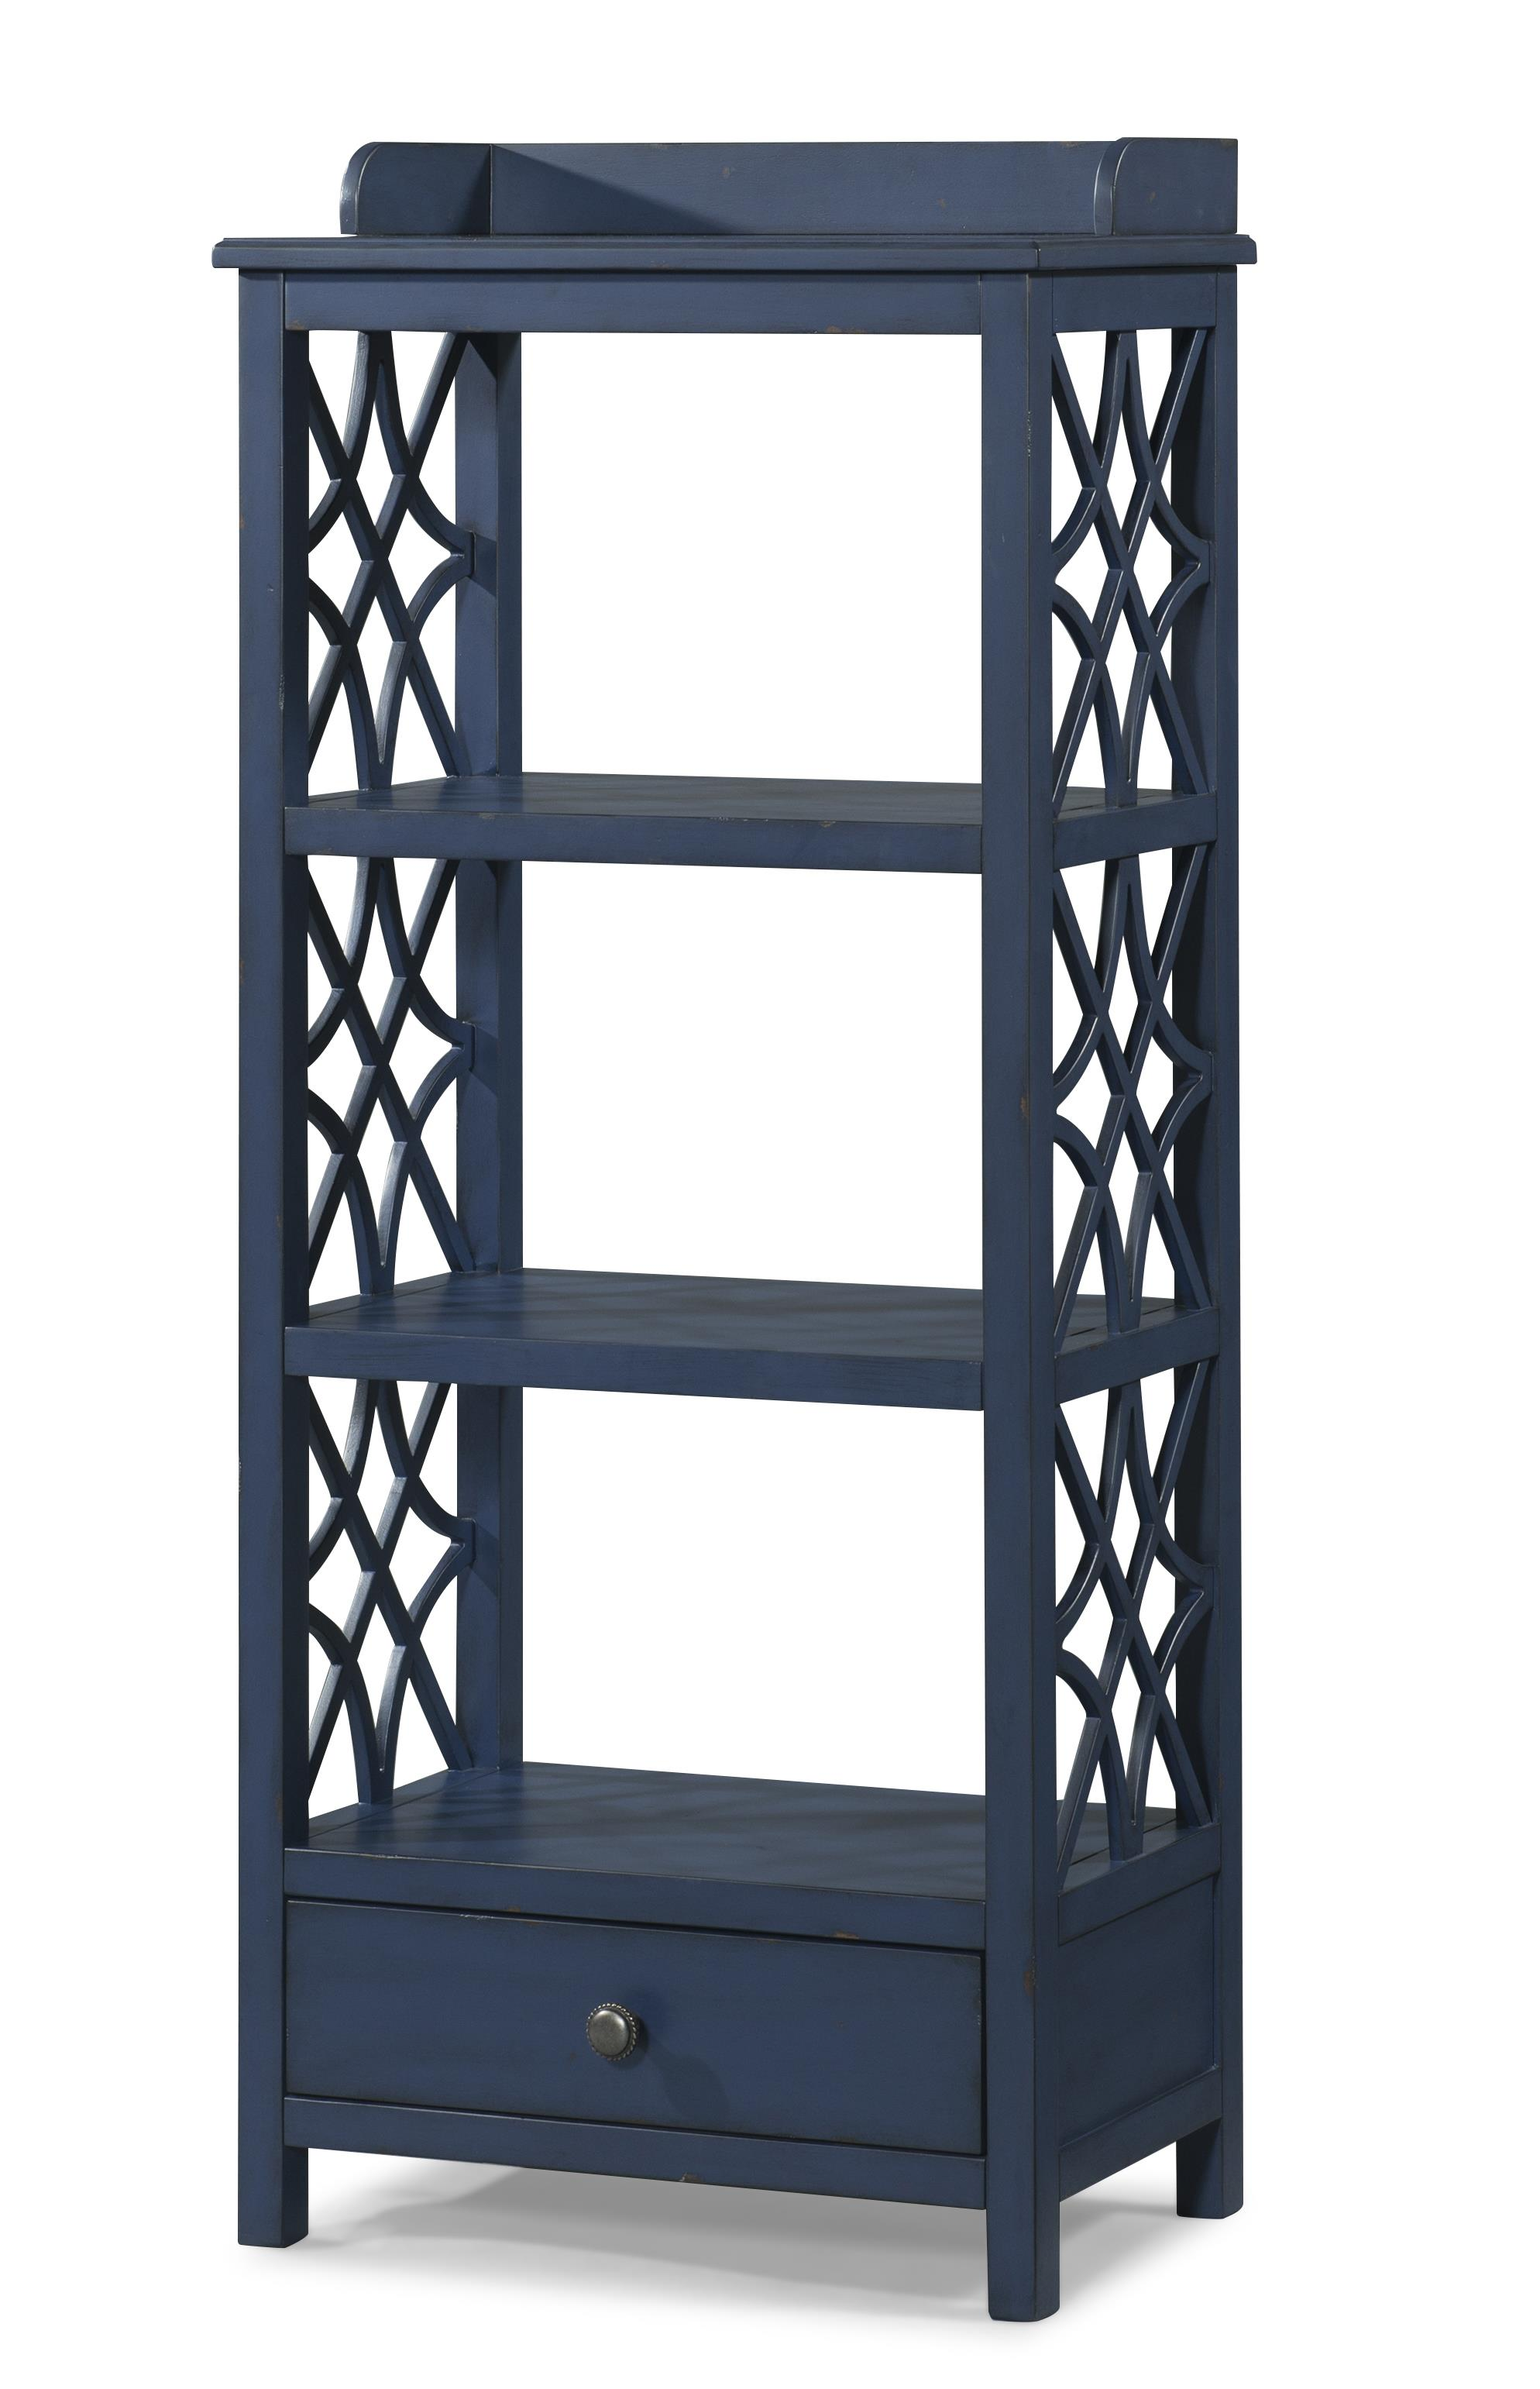 Honeysuckle Etagere with Shelf and Drawer Storage